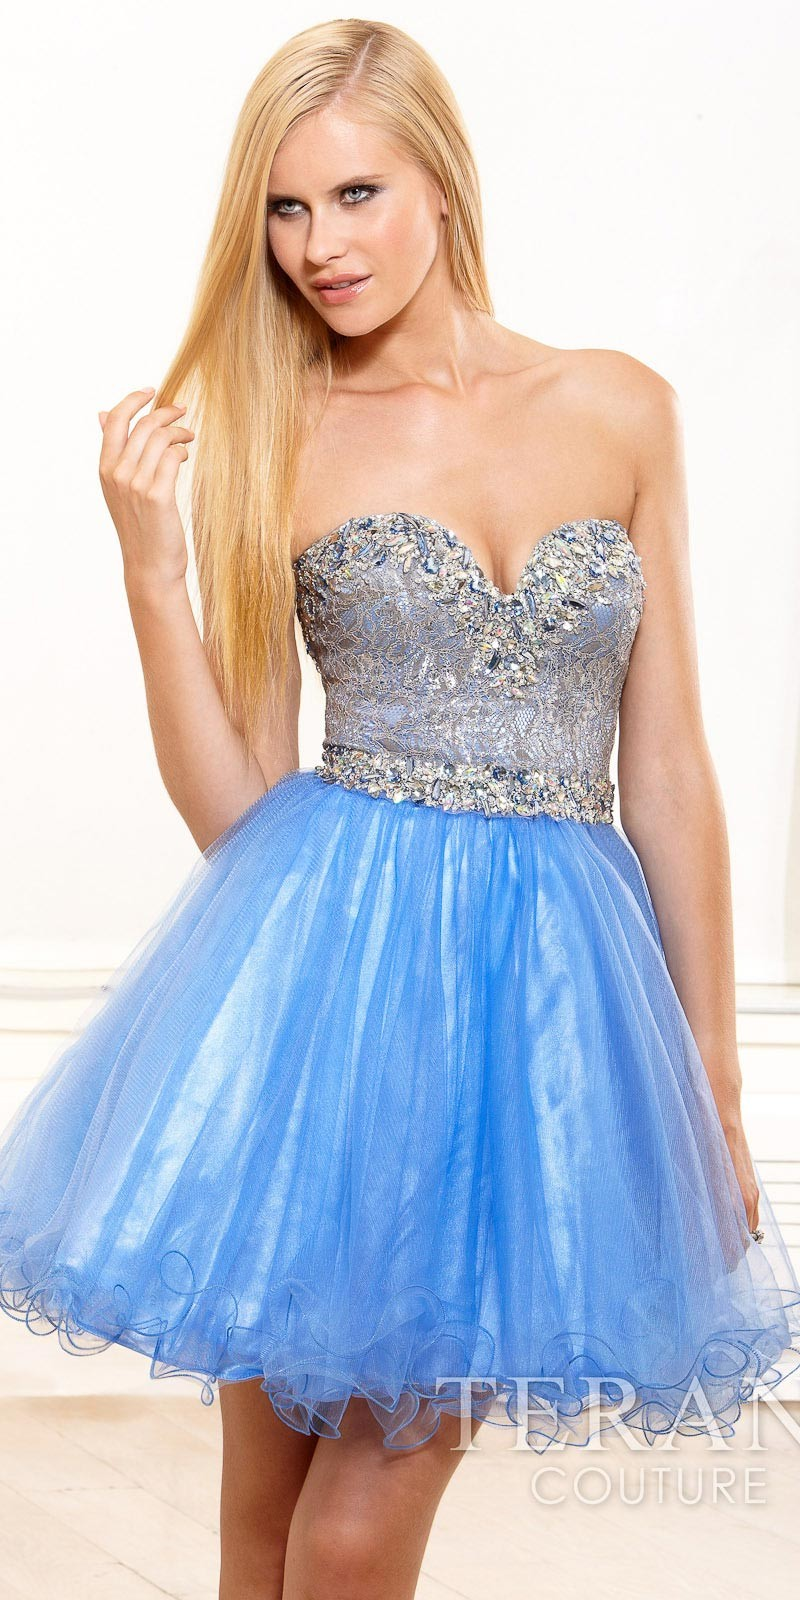 Extremely Short Prom Dresses